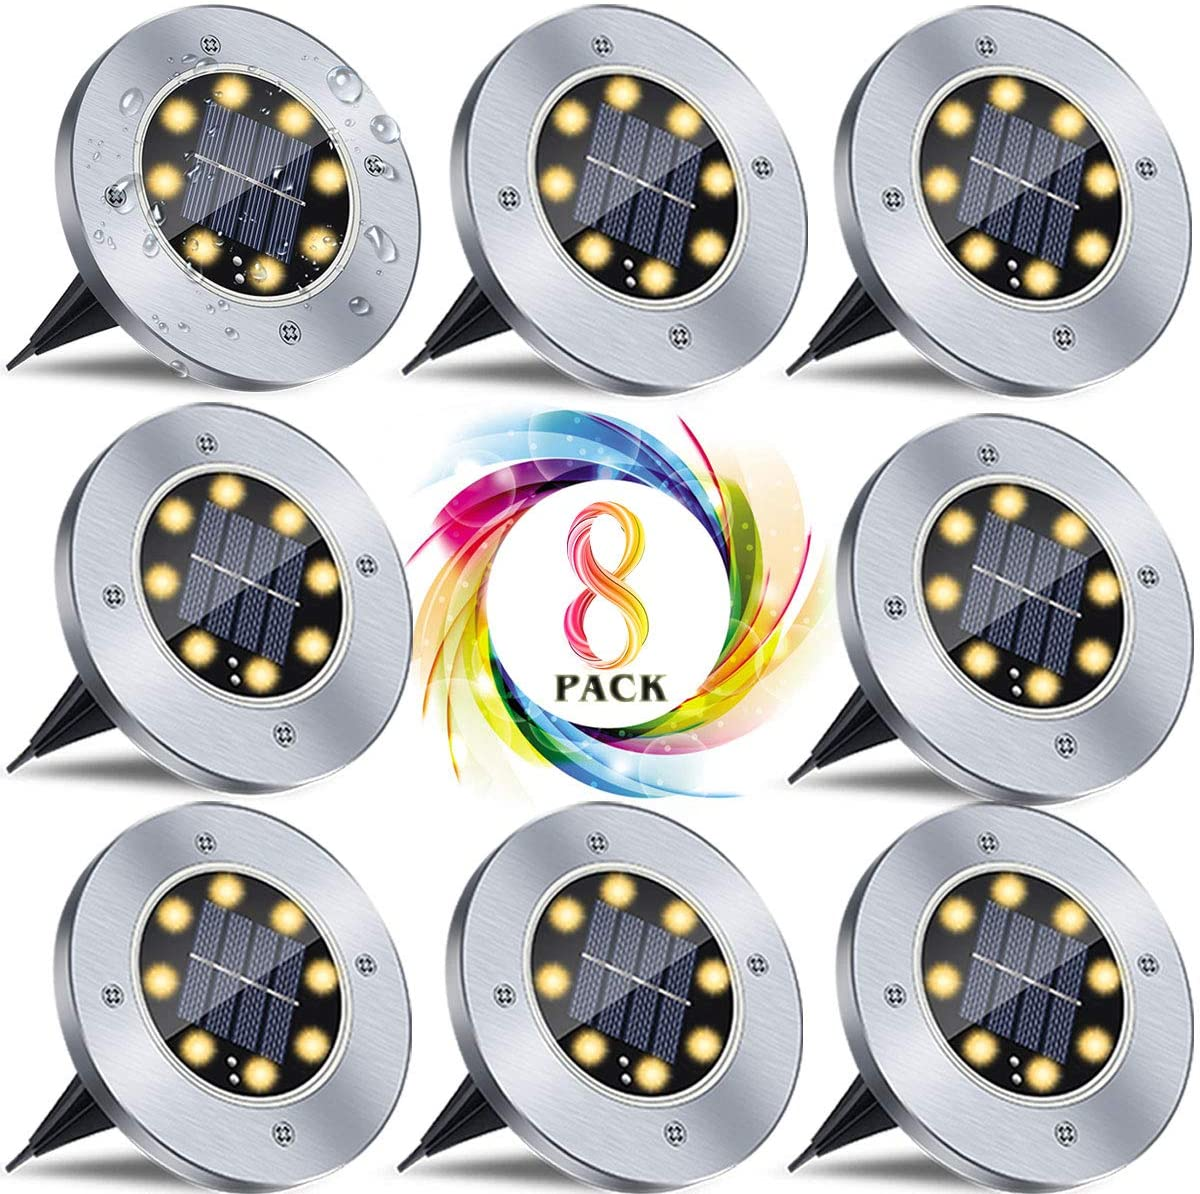 8 Pack Solar Ground Lights, Warm White 8 LED Solar Powered Outdoor in-Ground Waterproof Disk Garden Lights for Patio Pathway Walkway Driveway Fence Lawn